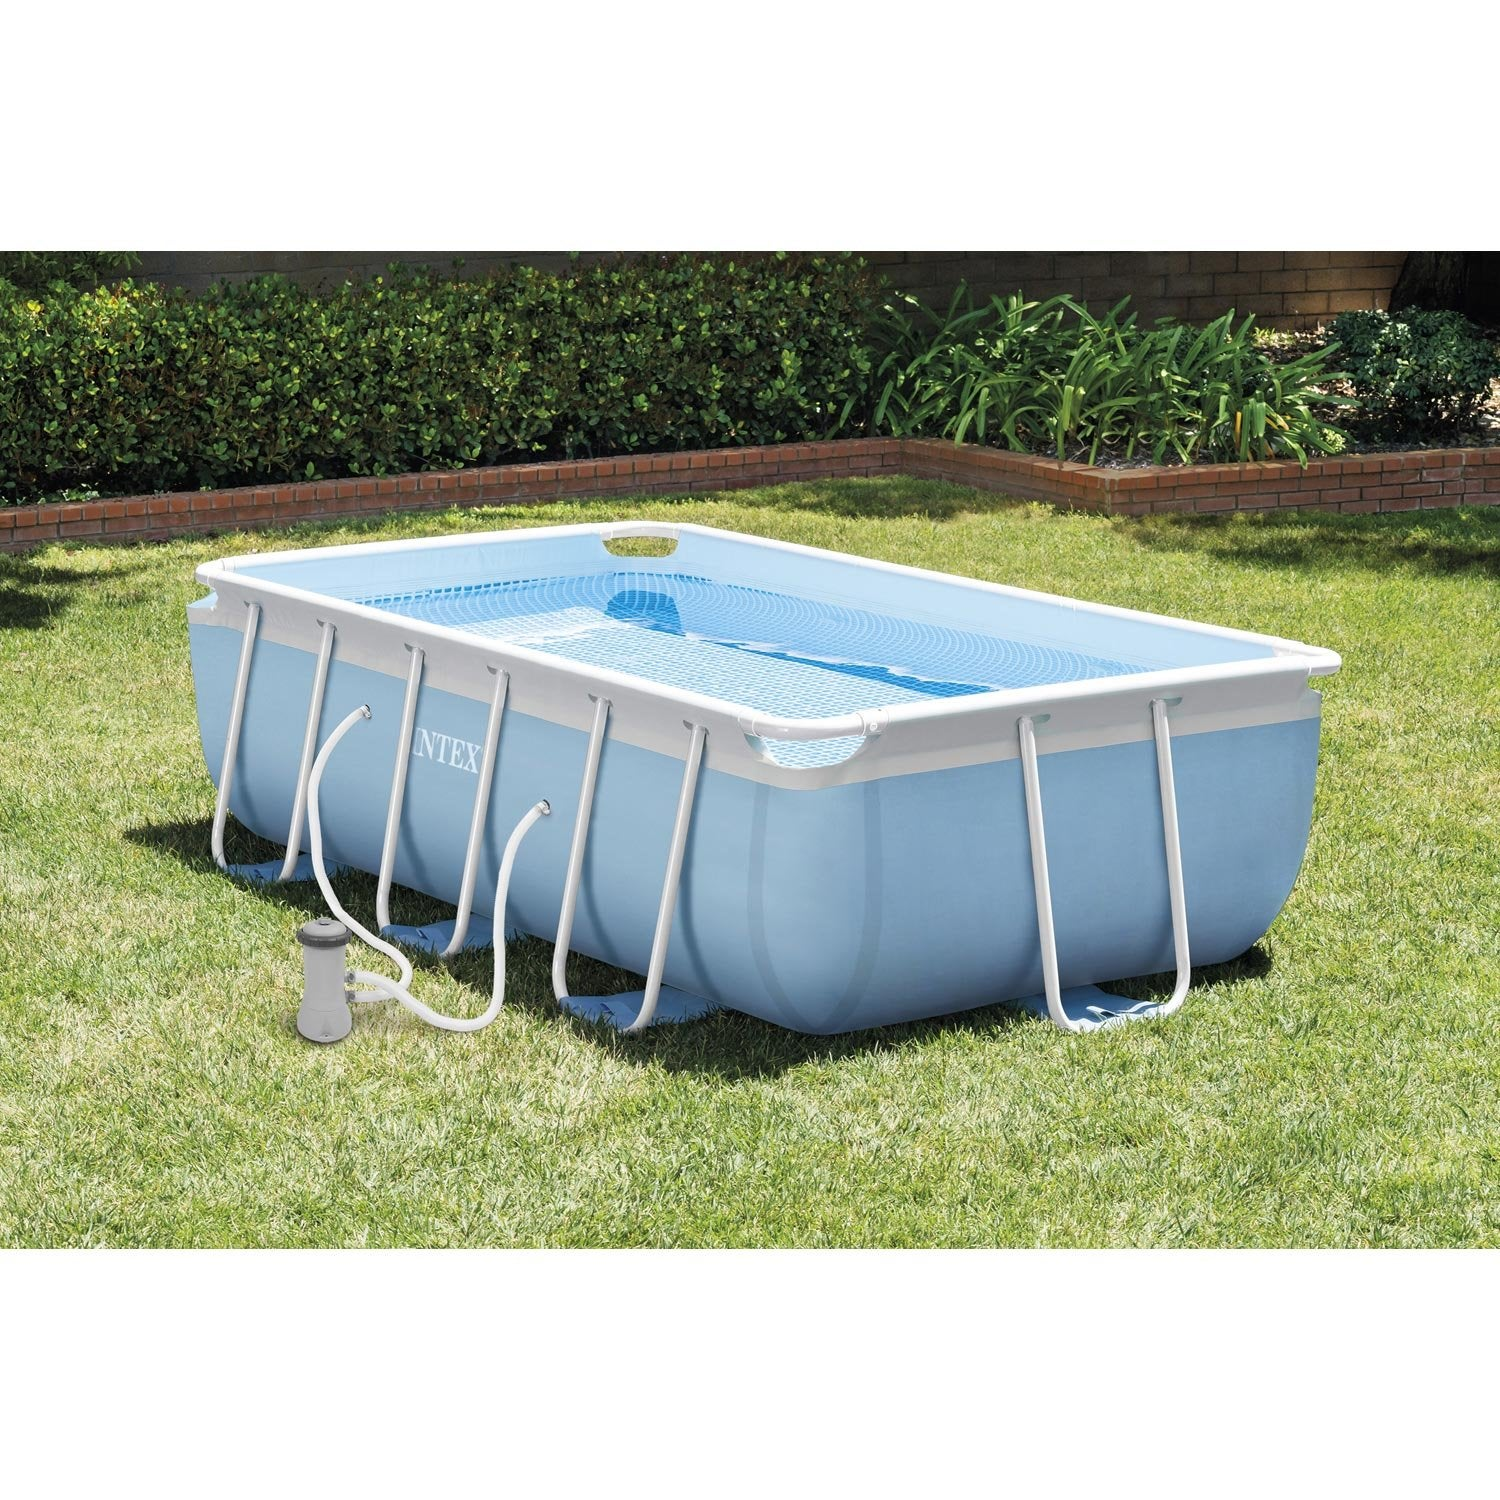 Piscine hors sol autoportante tubulaire intex l 3 4 x l 2 for Piscine hors sol rectangulaire 4x3